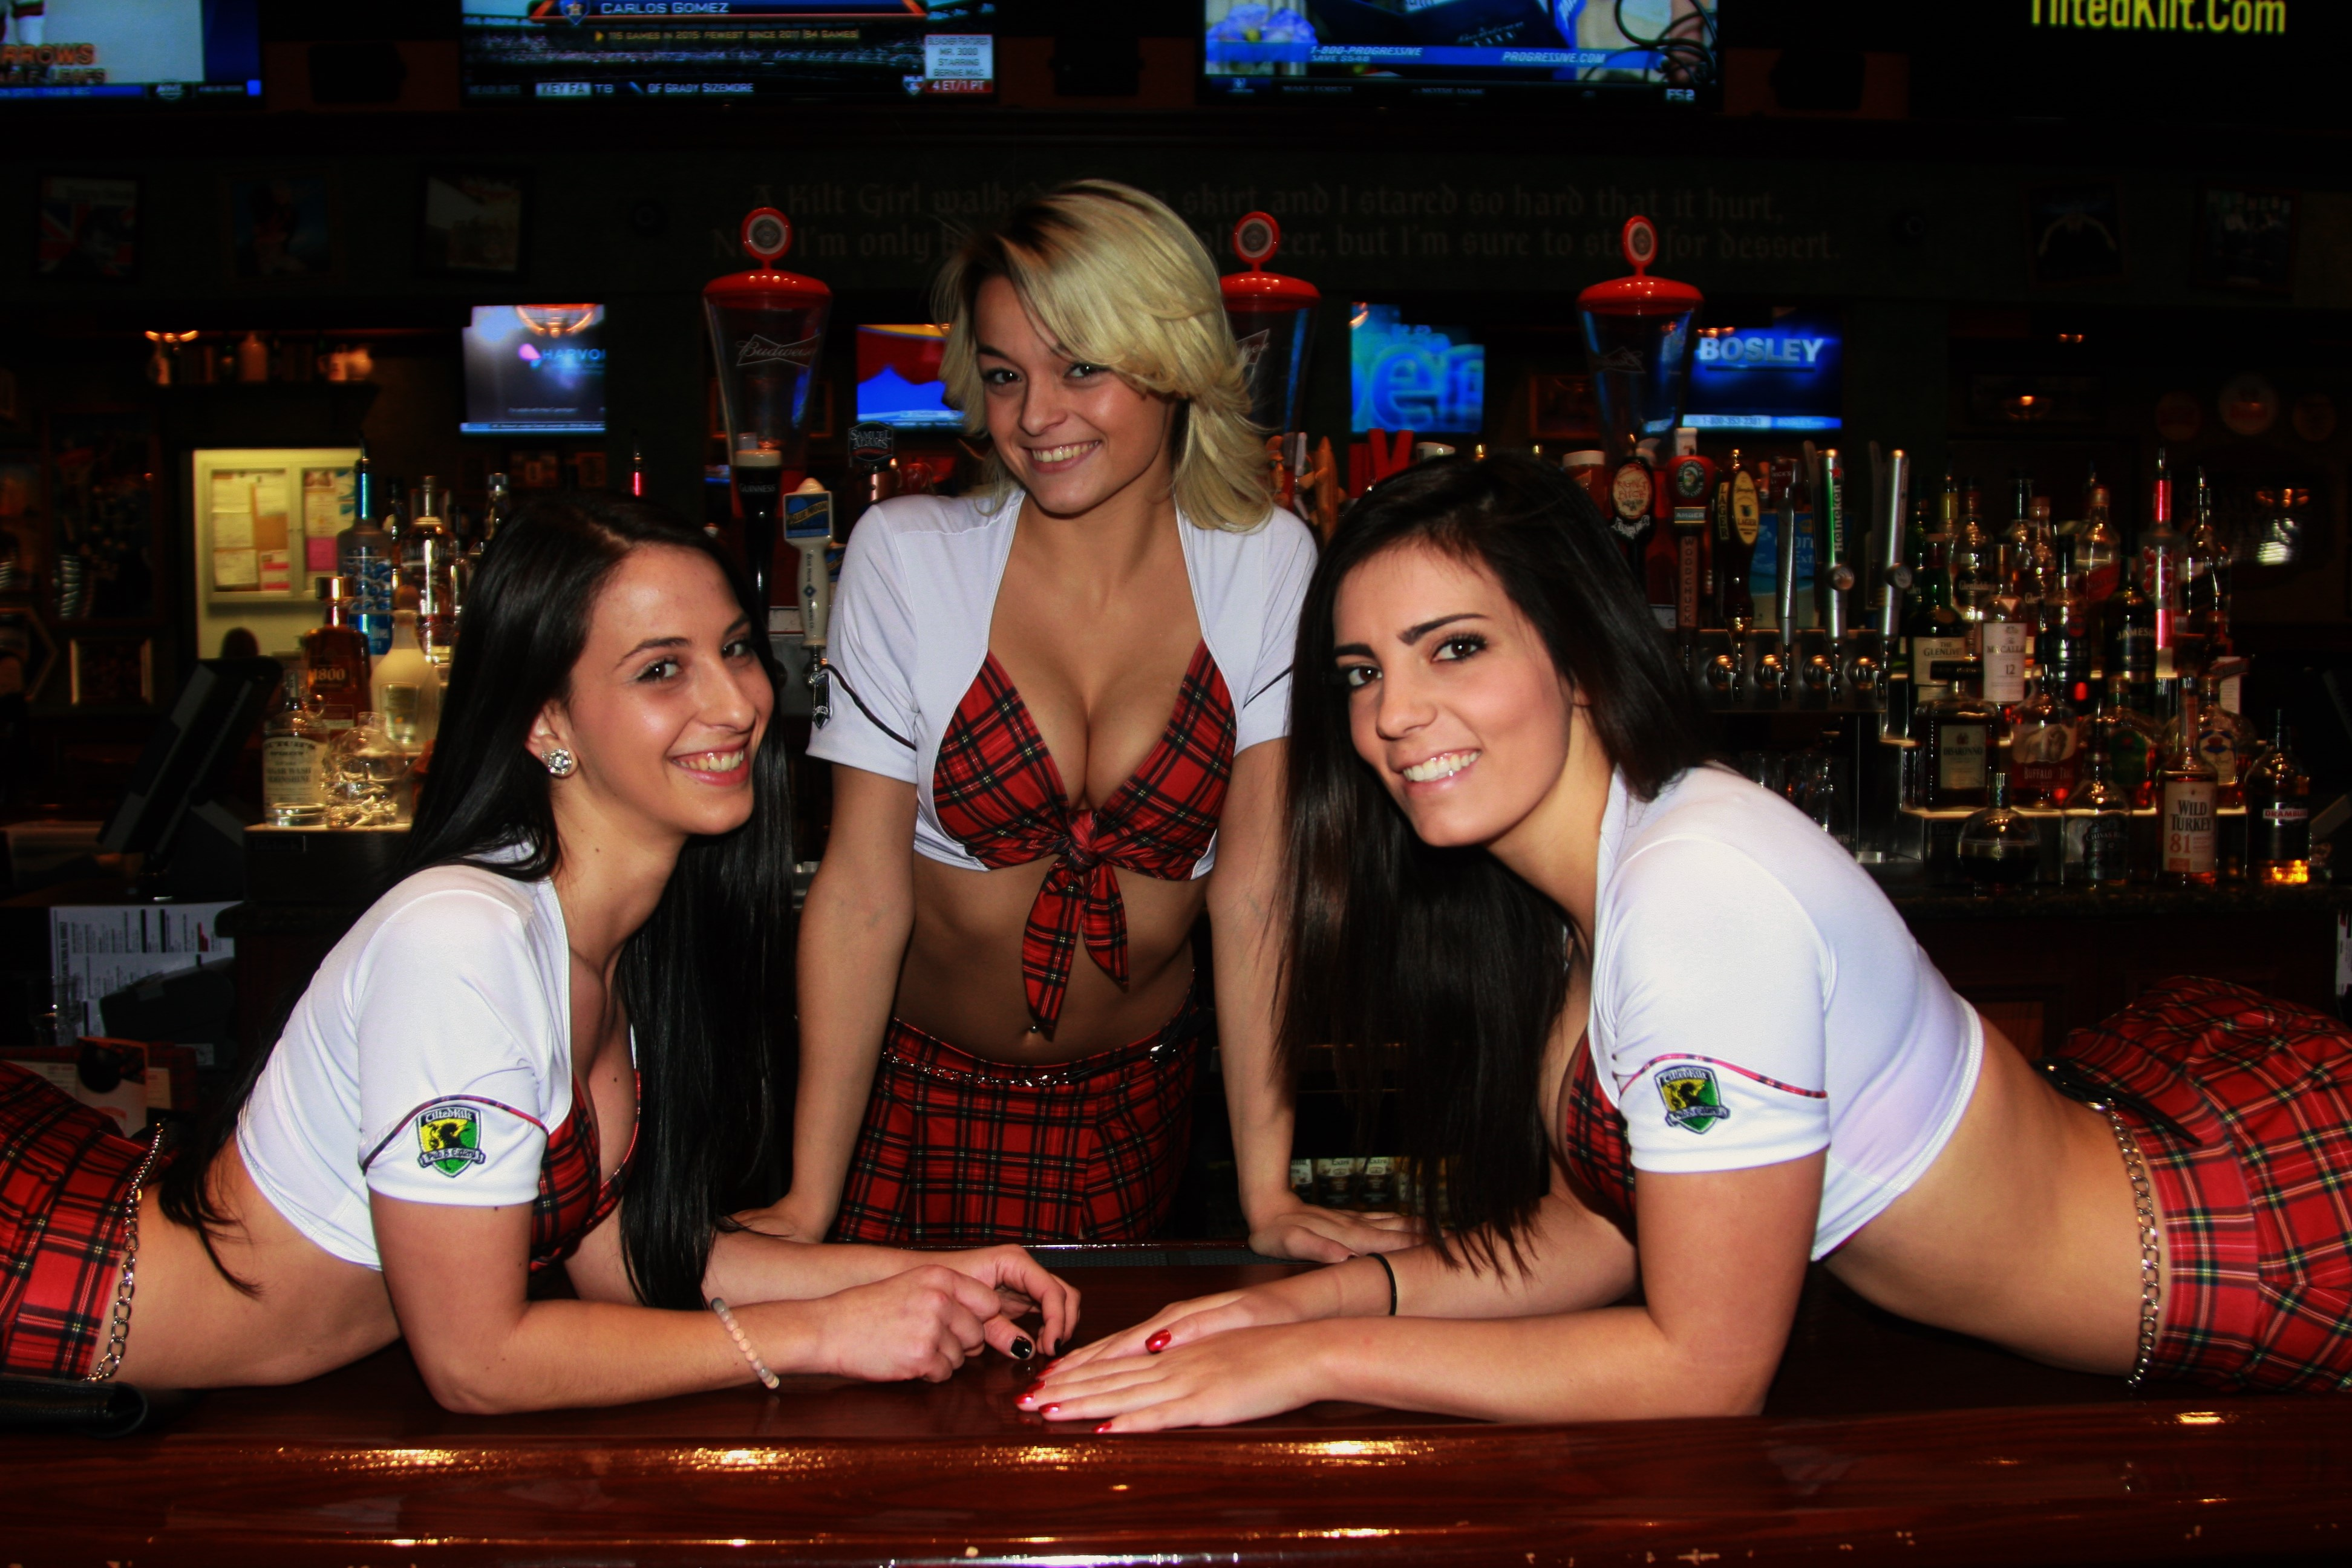 Tilted Kilt Pictures Inspirational Pictures